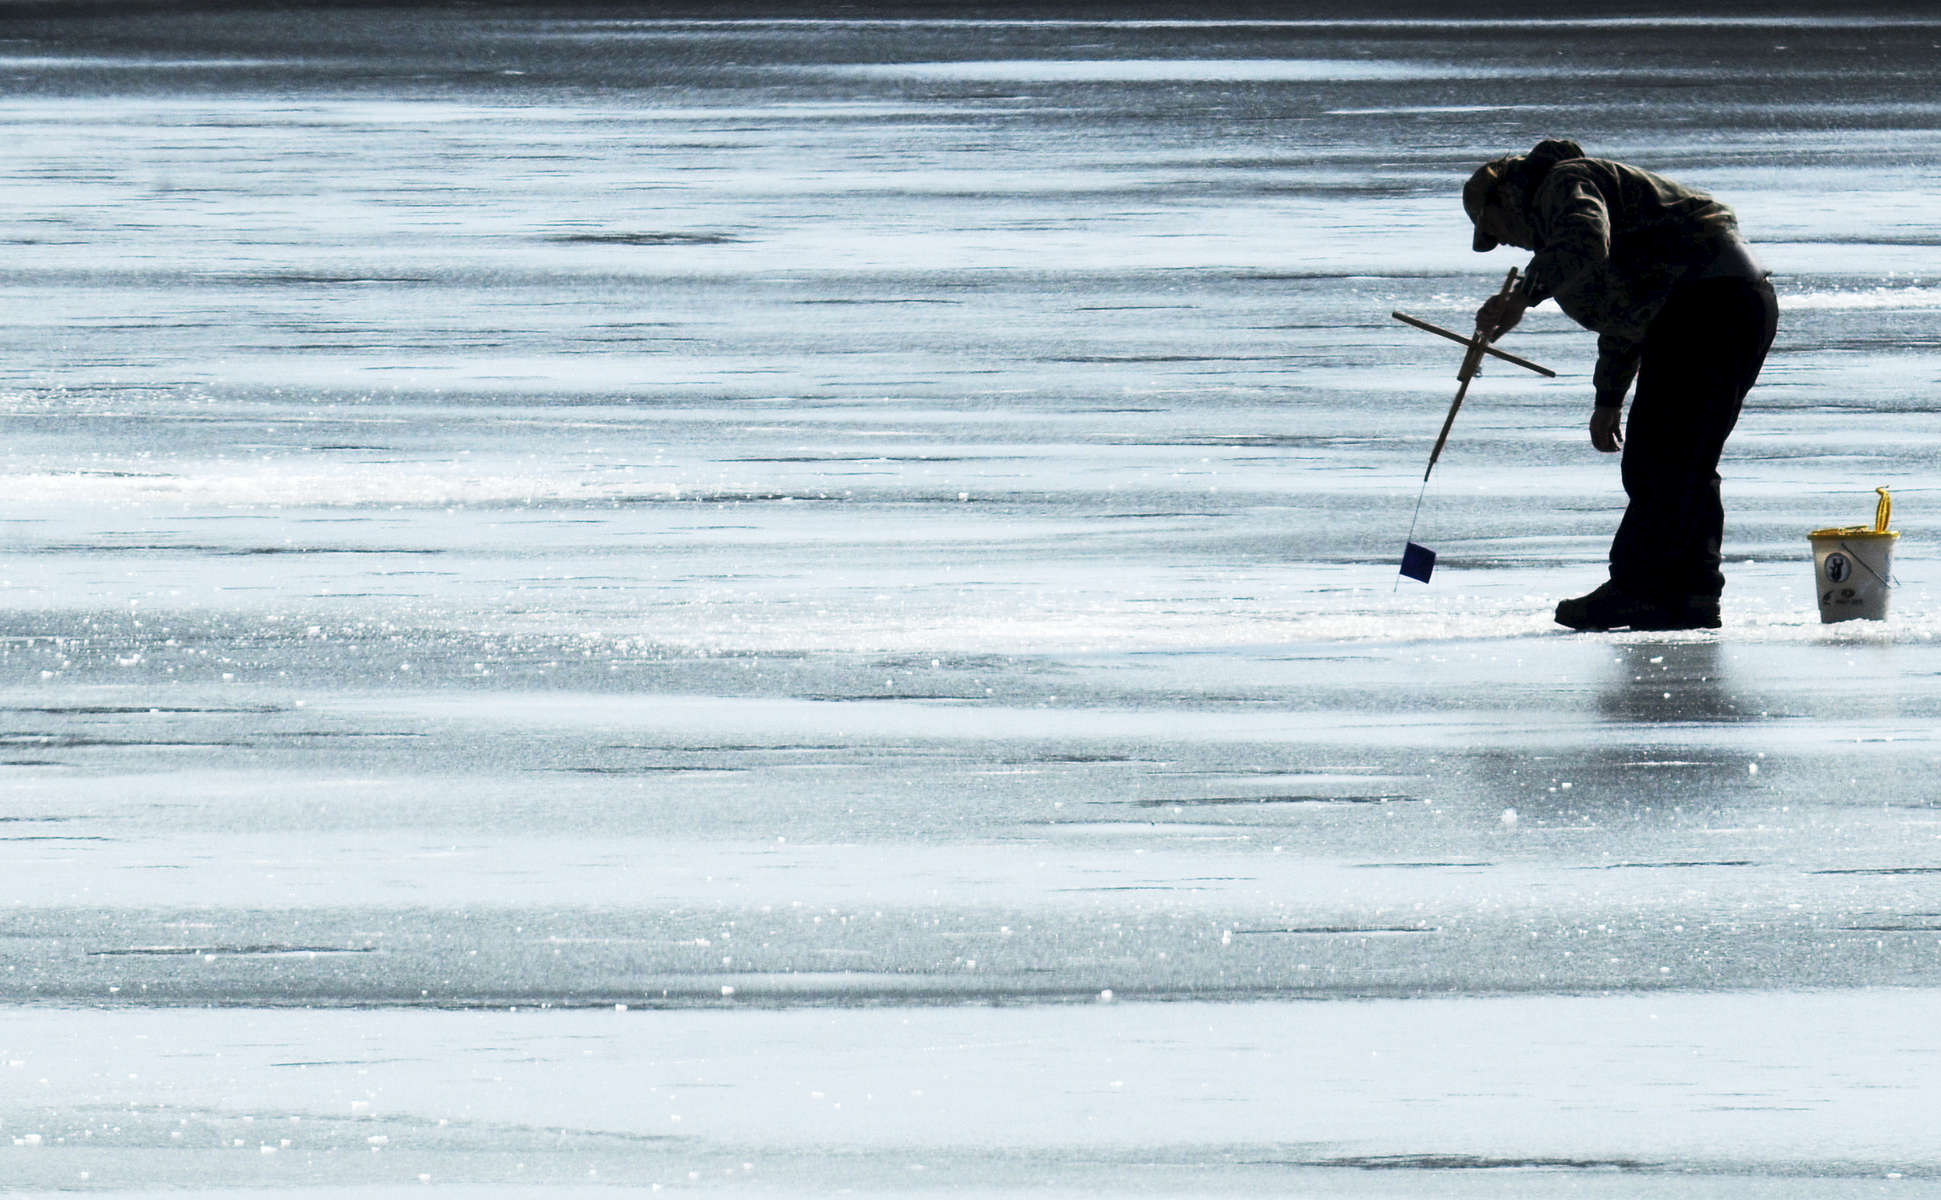 YARMOUTH PORT -- 01/23/11 -- Matthew St. Thomas of Sterling checks one of his tilts in the hopes of discovering a perch or bass on the line at Dennis Pond on Sunday morning. {quote}As soon as there's ice, we're here,{quote} he said of how often he and his crew come to the Cape. {quote}There's less snow and better fishing.{quote} 012311ch02 Cape Cod Times/Christine Hochkeppel